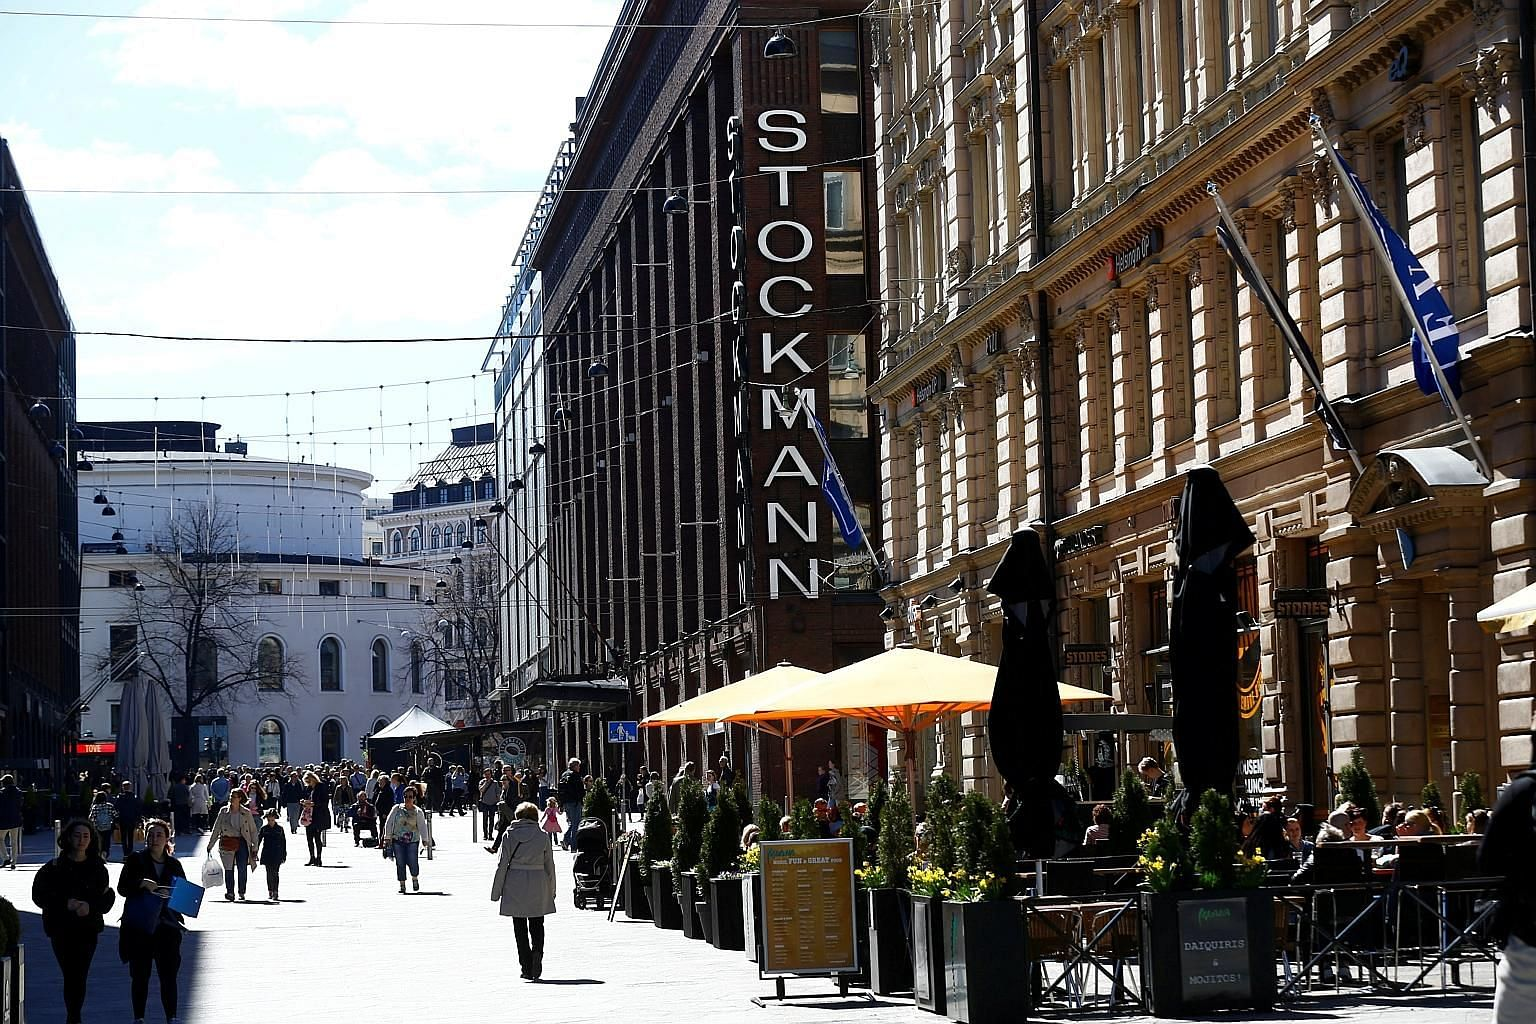 Finland's jobless rate stands at 9.2 per cent. That, and the complexity of the Finnish social benefits system, had fuelled the calls for ambitious social security reforms, including the basic income trial.